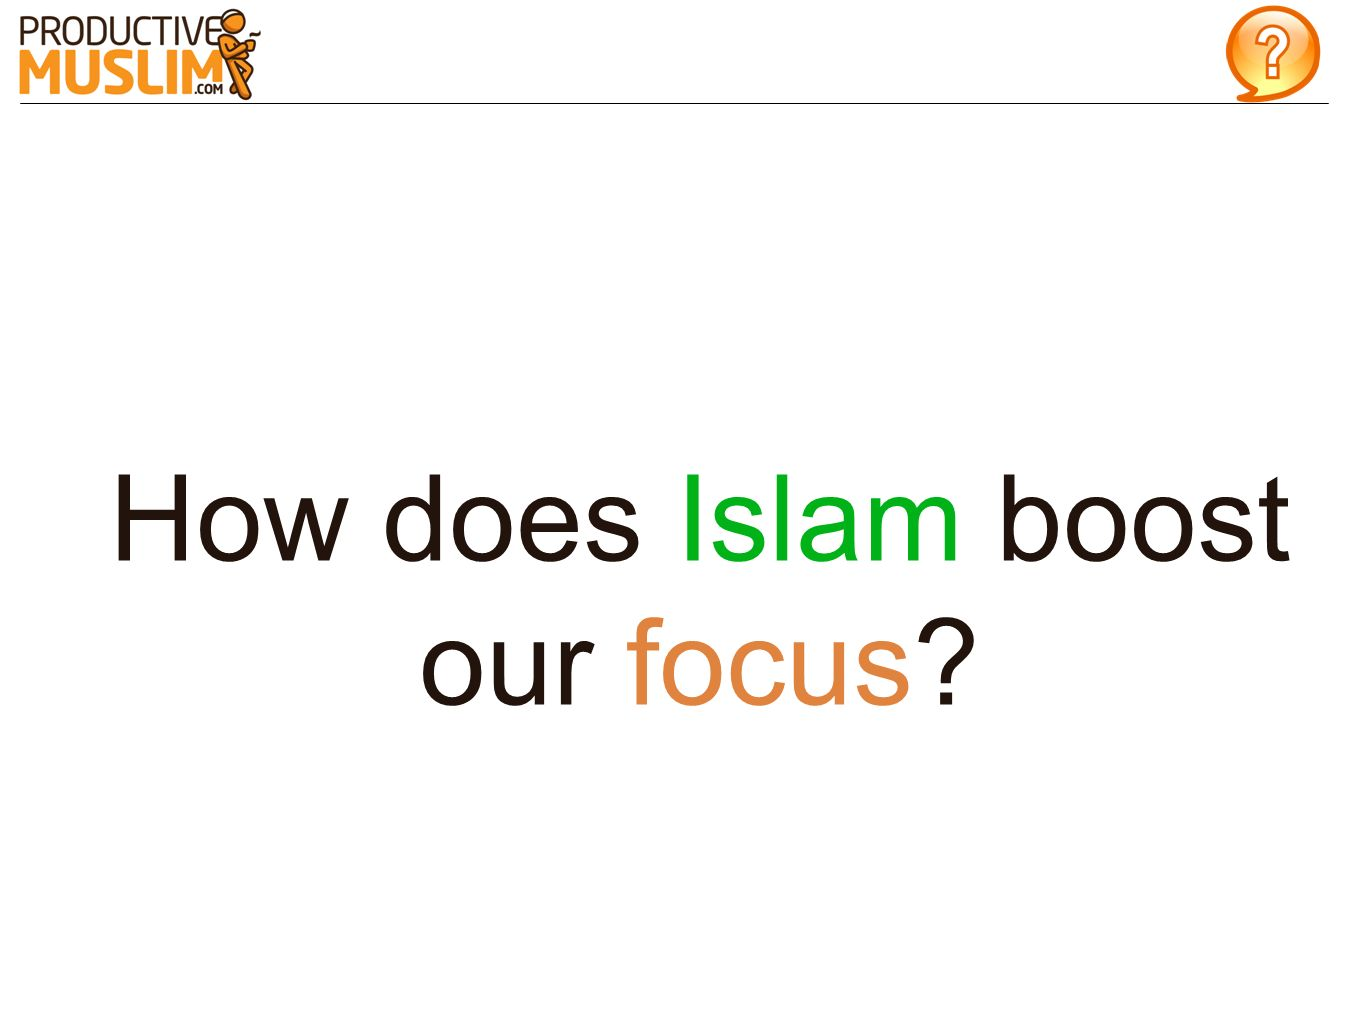 How does Islam boost our focus